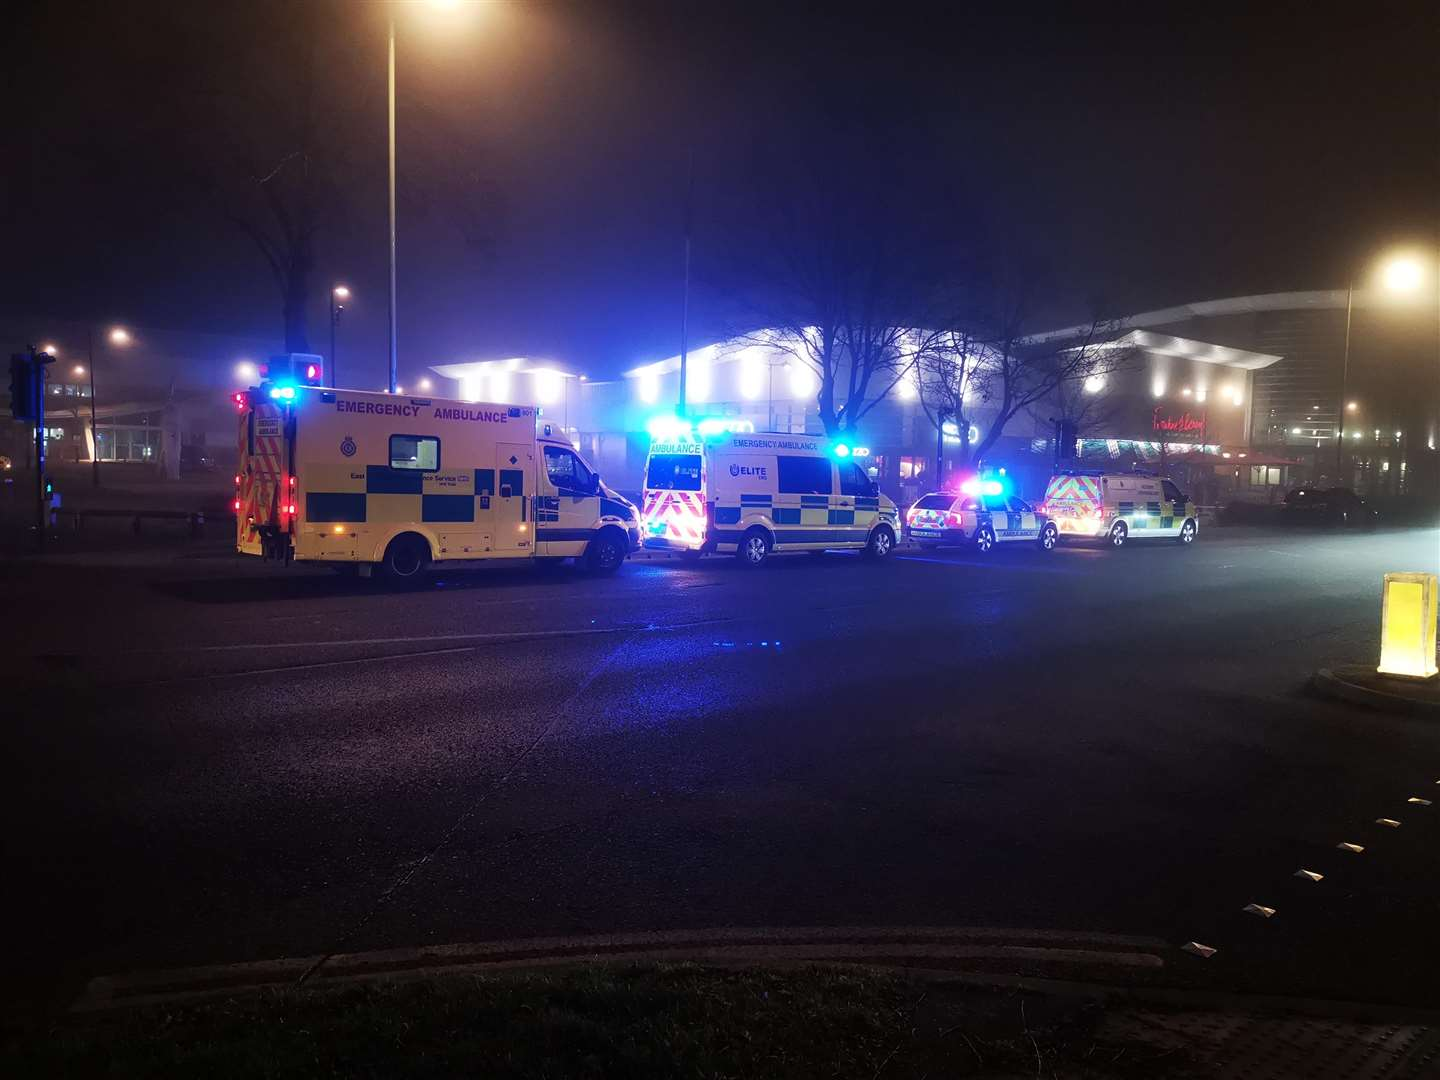 Ambulances outside Frankie & Benny's in Haverhill during the incident. Picture by Aaron Luccarini.